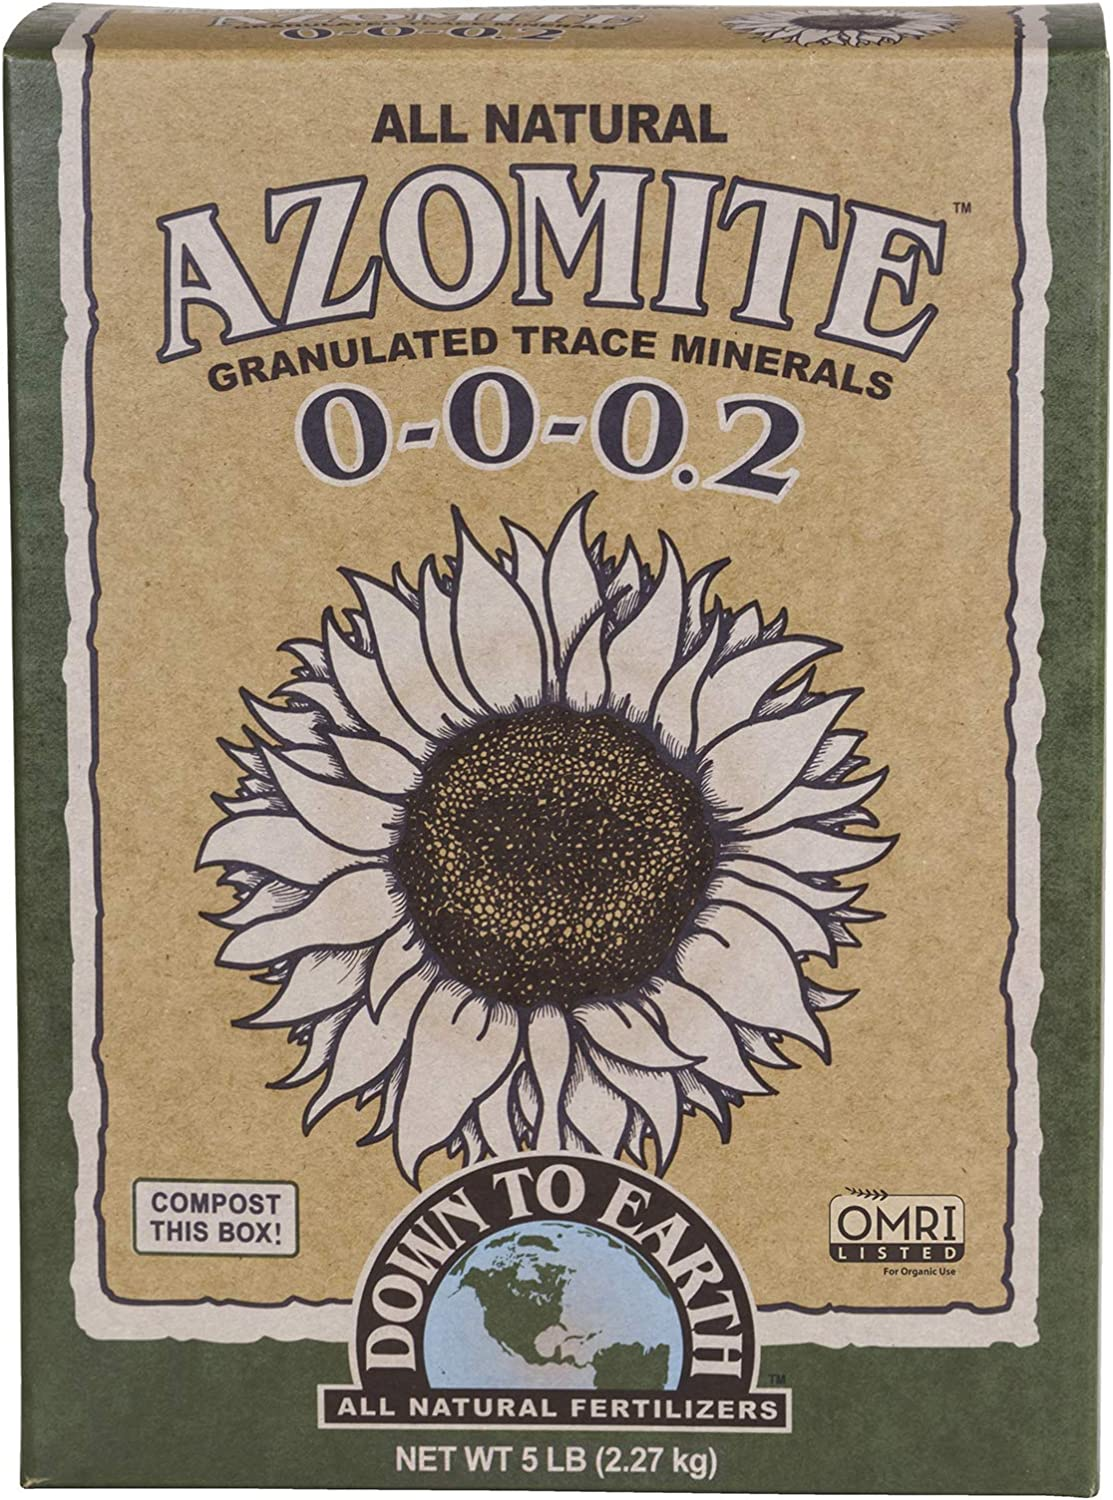 Down to Earth Organic Azomite Granulated Trace Minerals 0-0-0.2, 5 lb